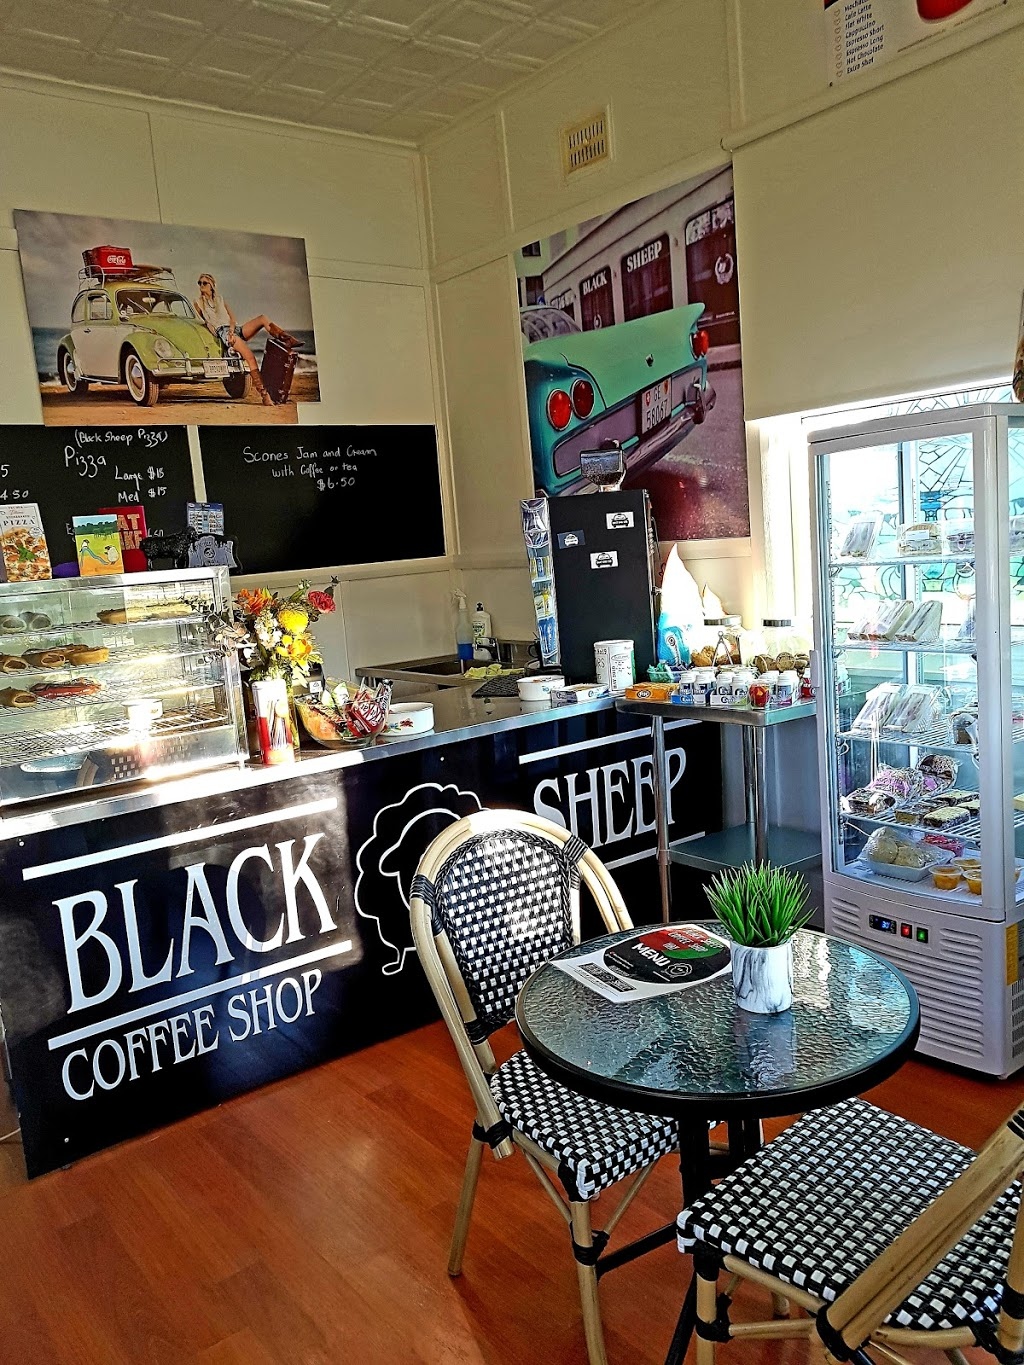 The Black Sheep Coffee Shop Hay | cafe | 62 Lachlan St, Hay NSW 2711, Australia | 0428227909 OR +61 428 227 909